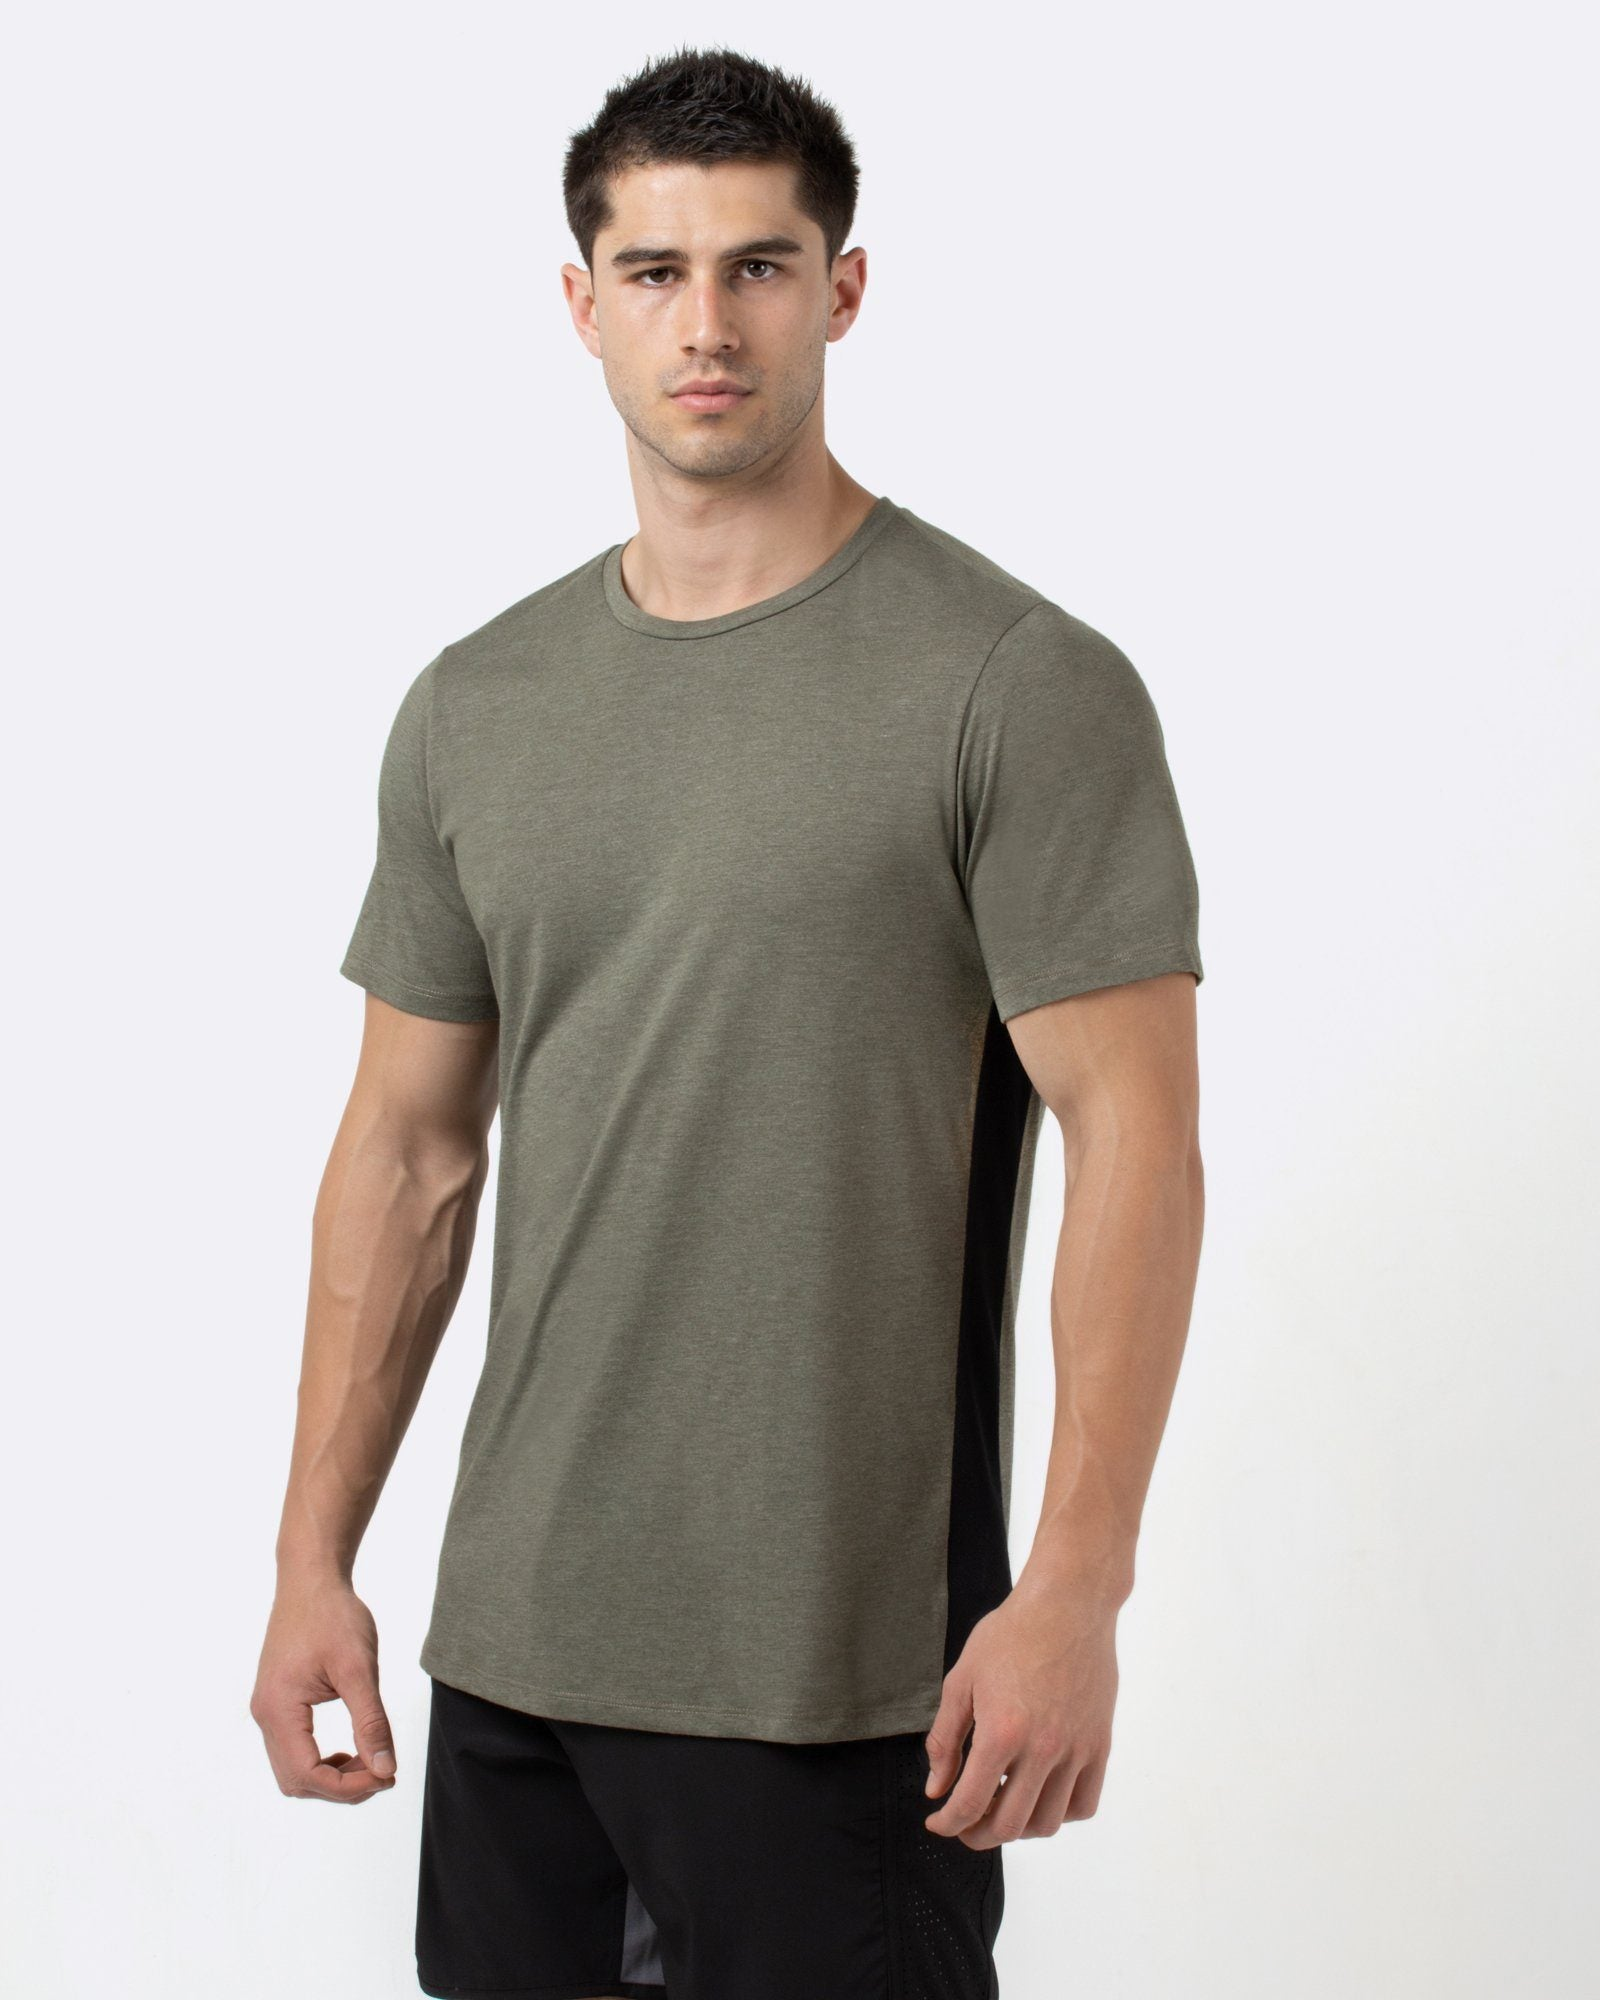 WPN Wear Trace T-Shirt - Olive